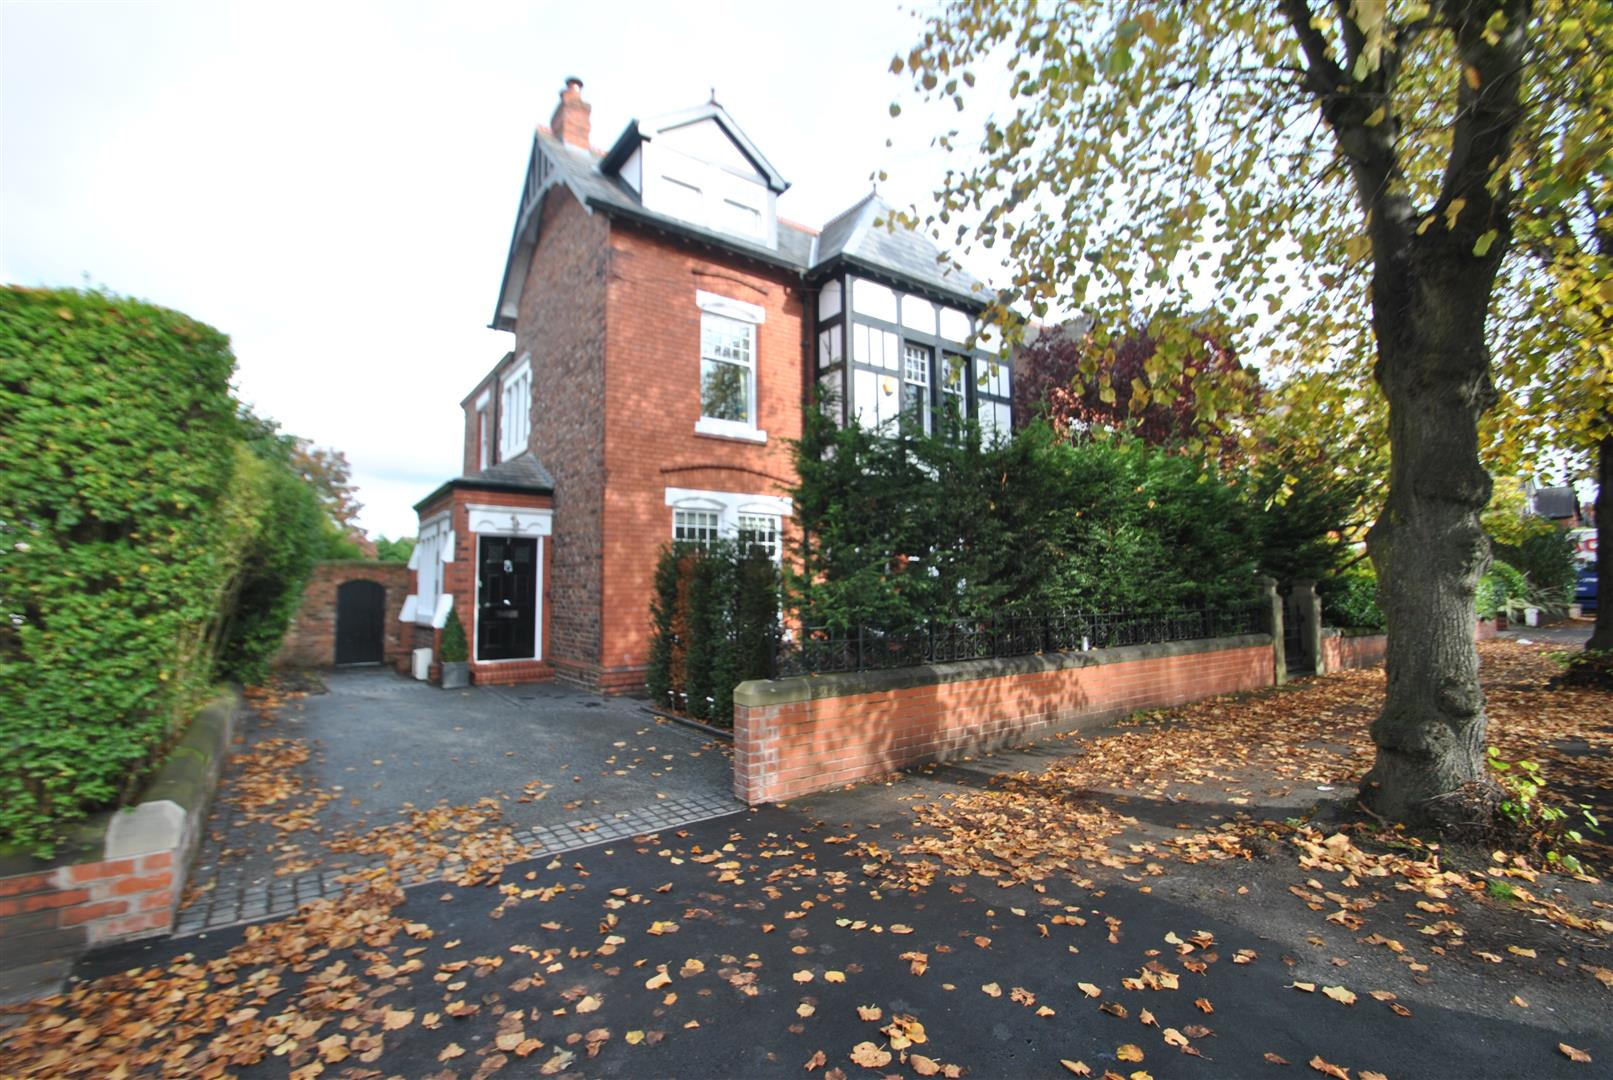 6 Bedrooms Detached House for sale in Grappenhall Road, STOCKTON HEATH, WARRINGTON, WA4